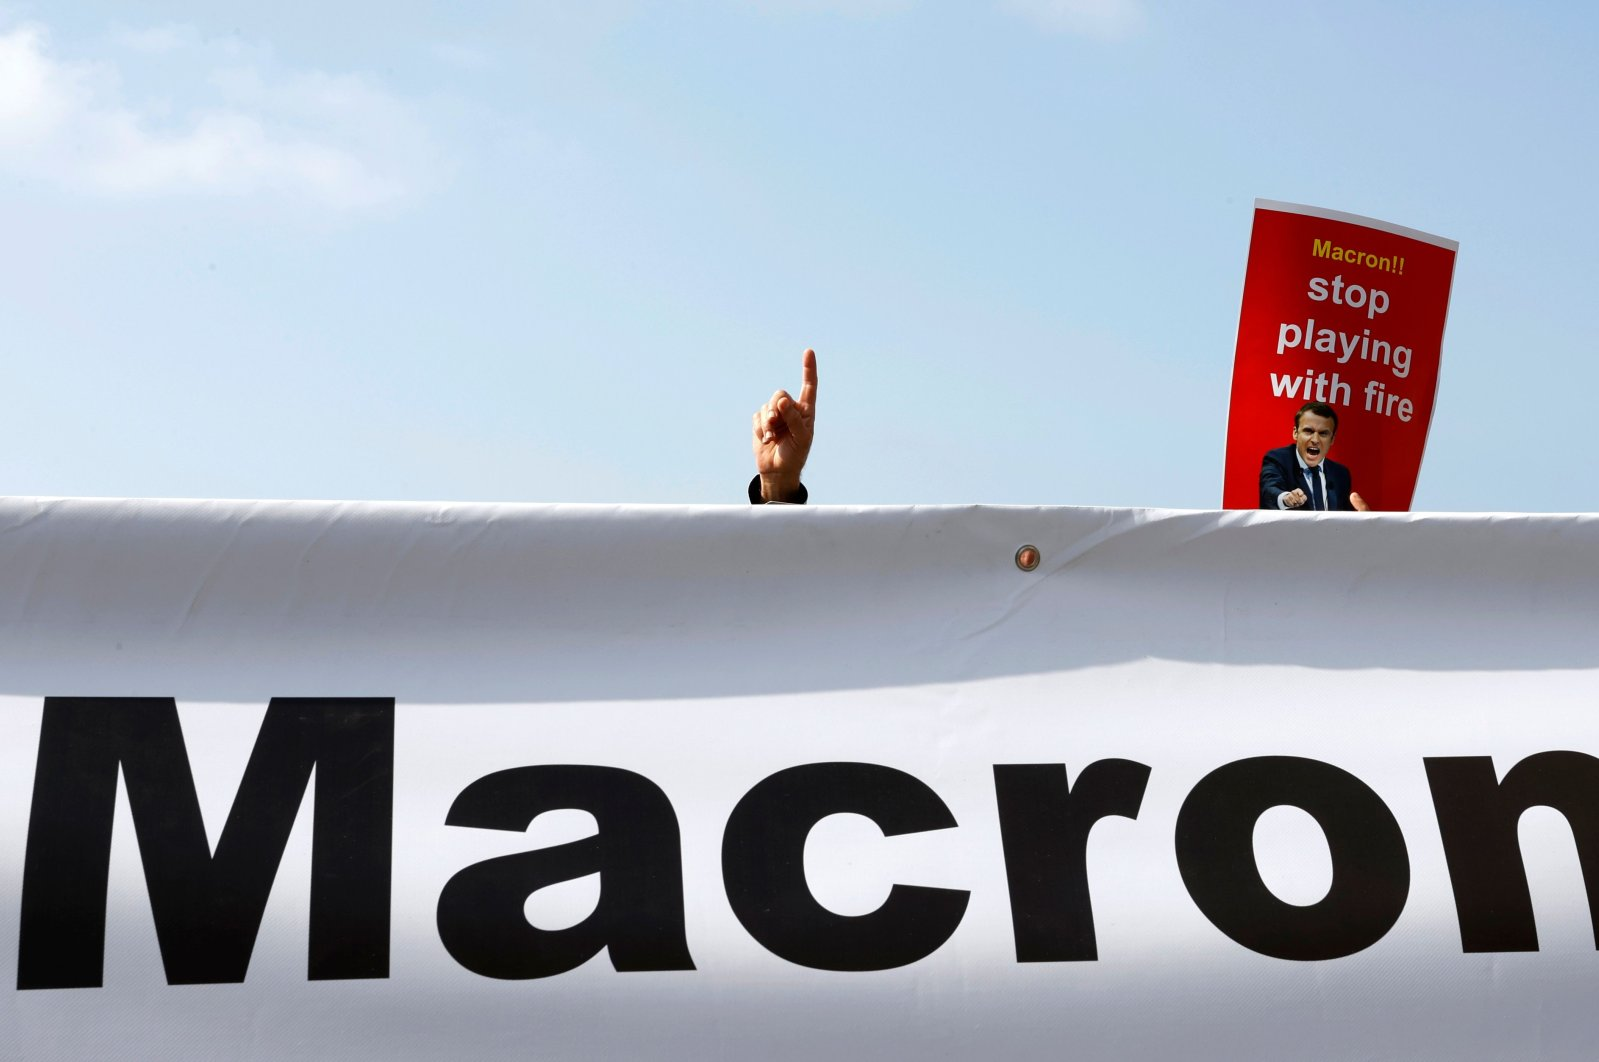 Arab-Israeli Muslim demonstrators gather near the French embassy in Israel's Mediterranean coastal city of Tel Aviv for a protest against comments by French President Emmanuel Macron defending cartoons of the Prophet Muhammed, on Oct. 27, 2020. (AFP Photo)